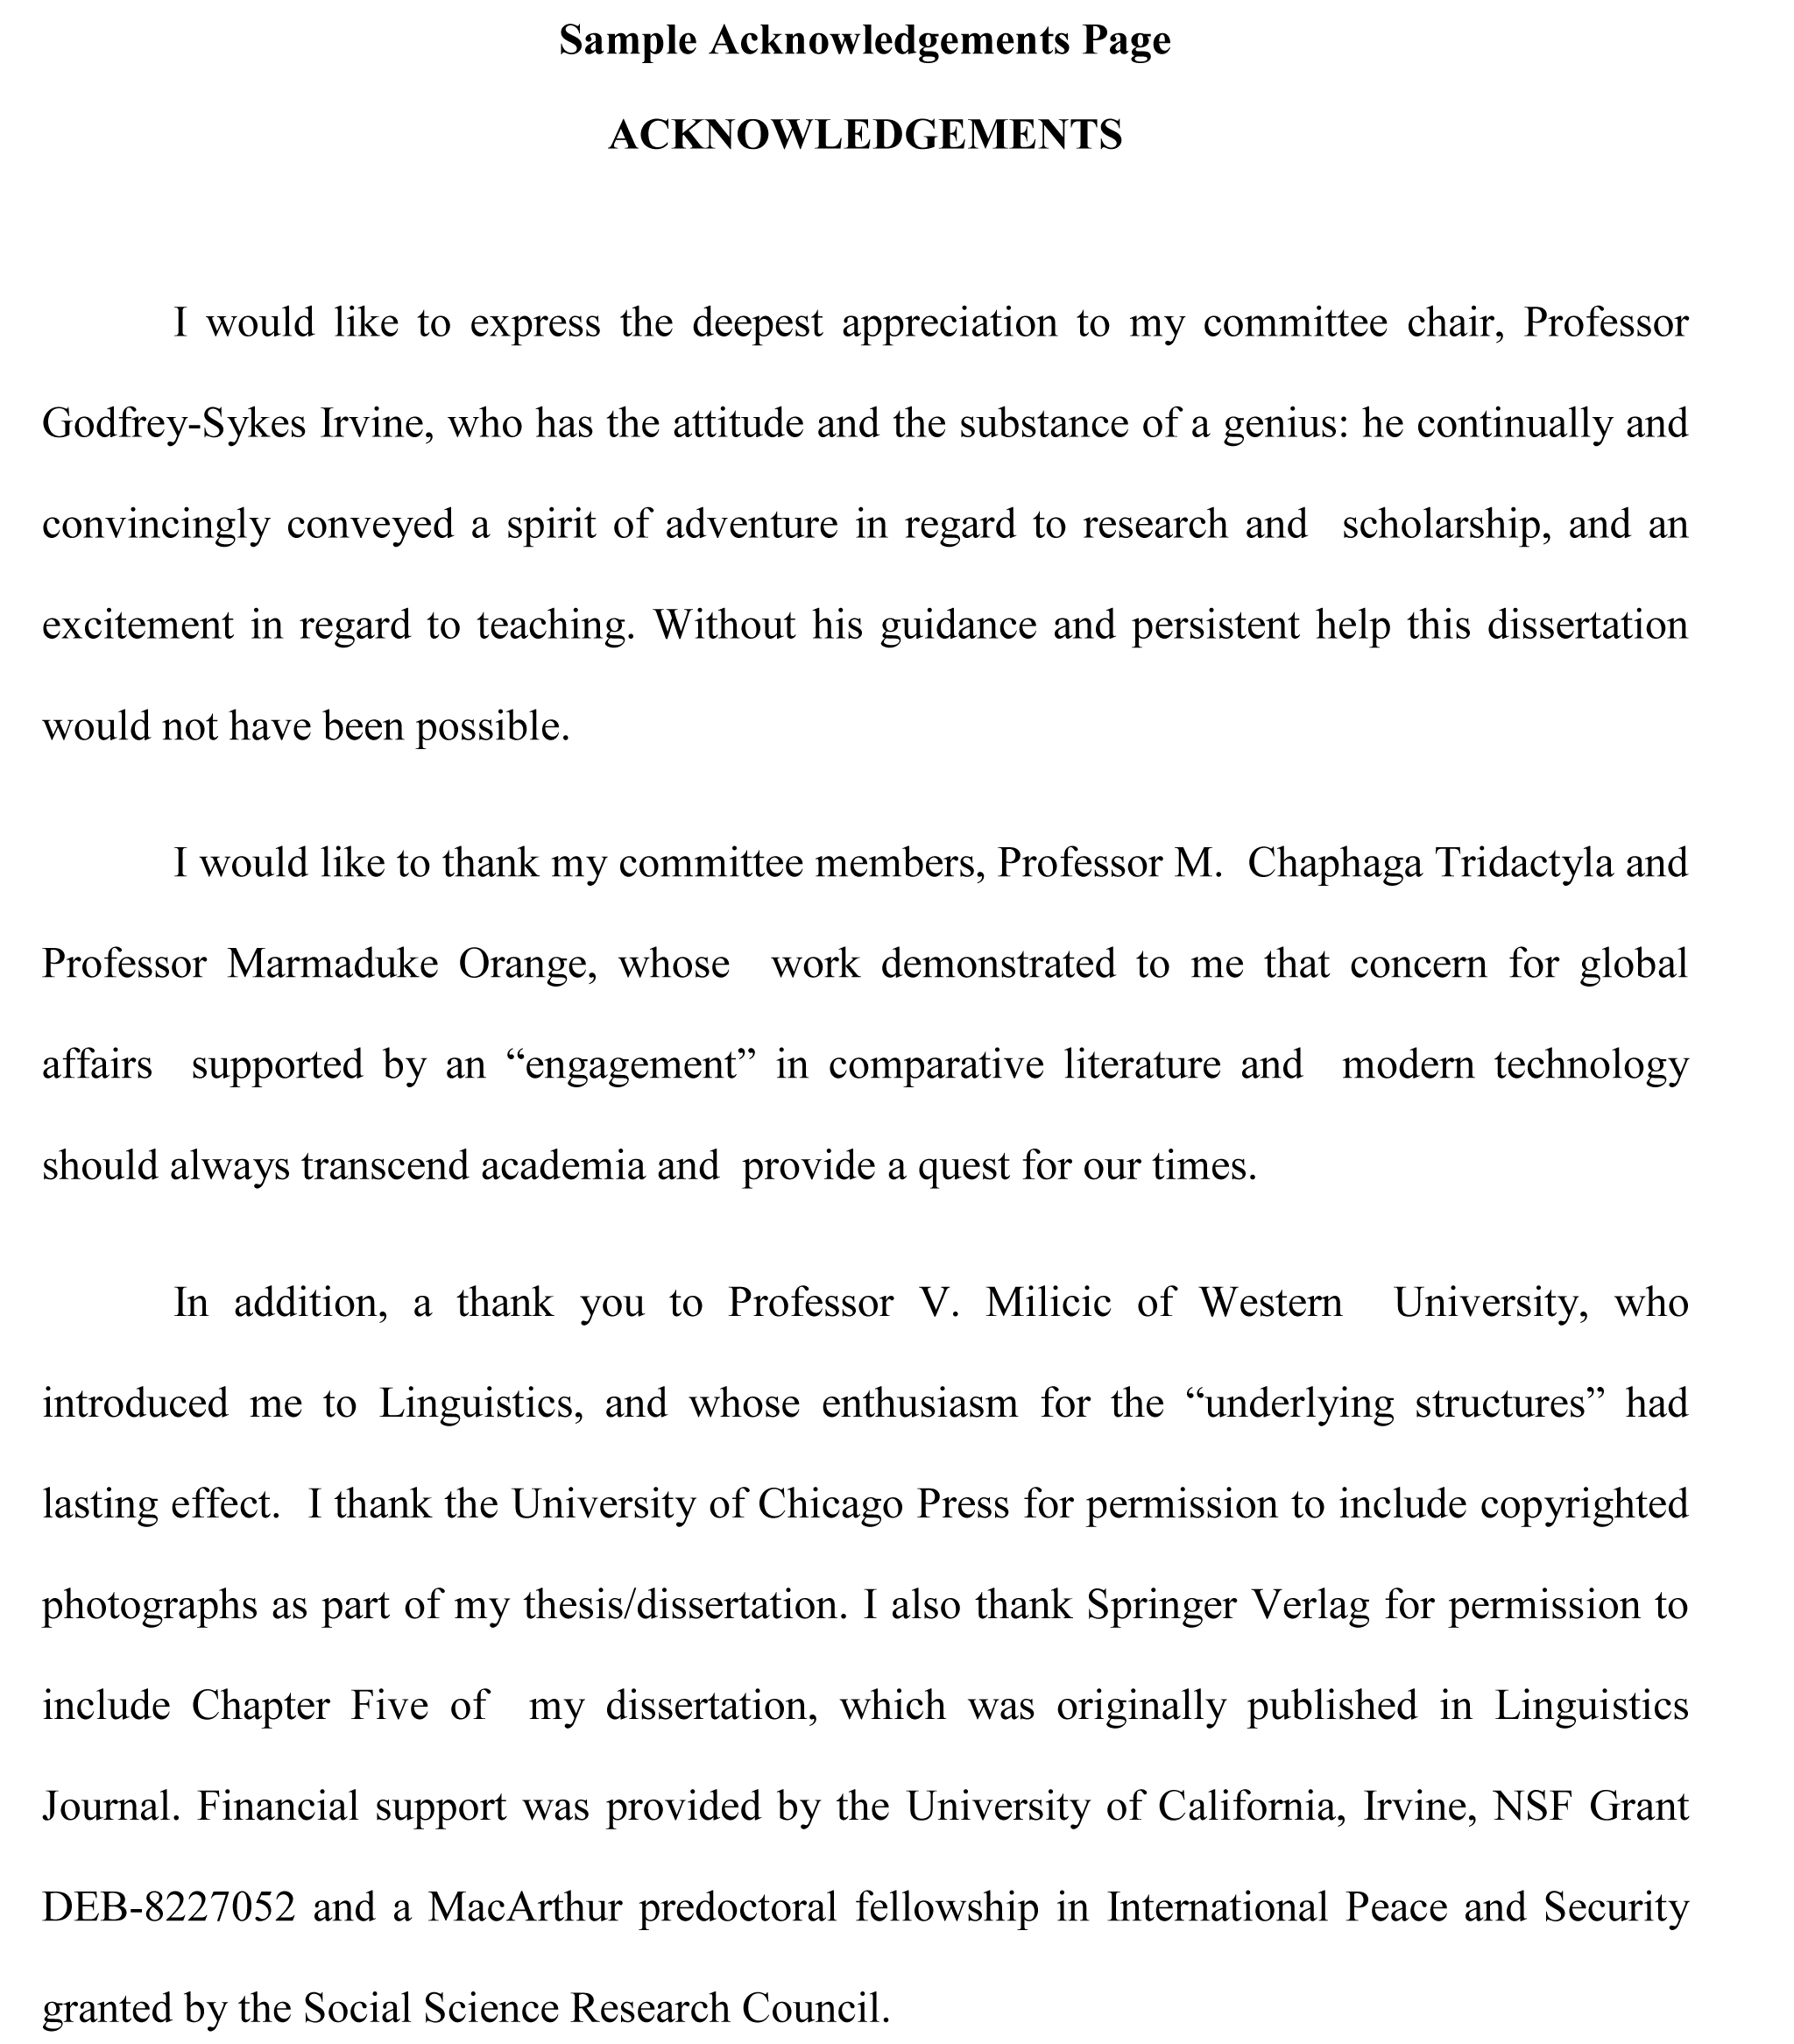 Phd Thesis Acknowledgement Your Website Acknowledgements For Phd Thesis O  This Is My Phd Thesis Acknowledgement. Call Of The Wild Essay Questions